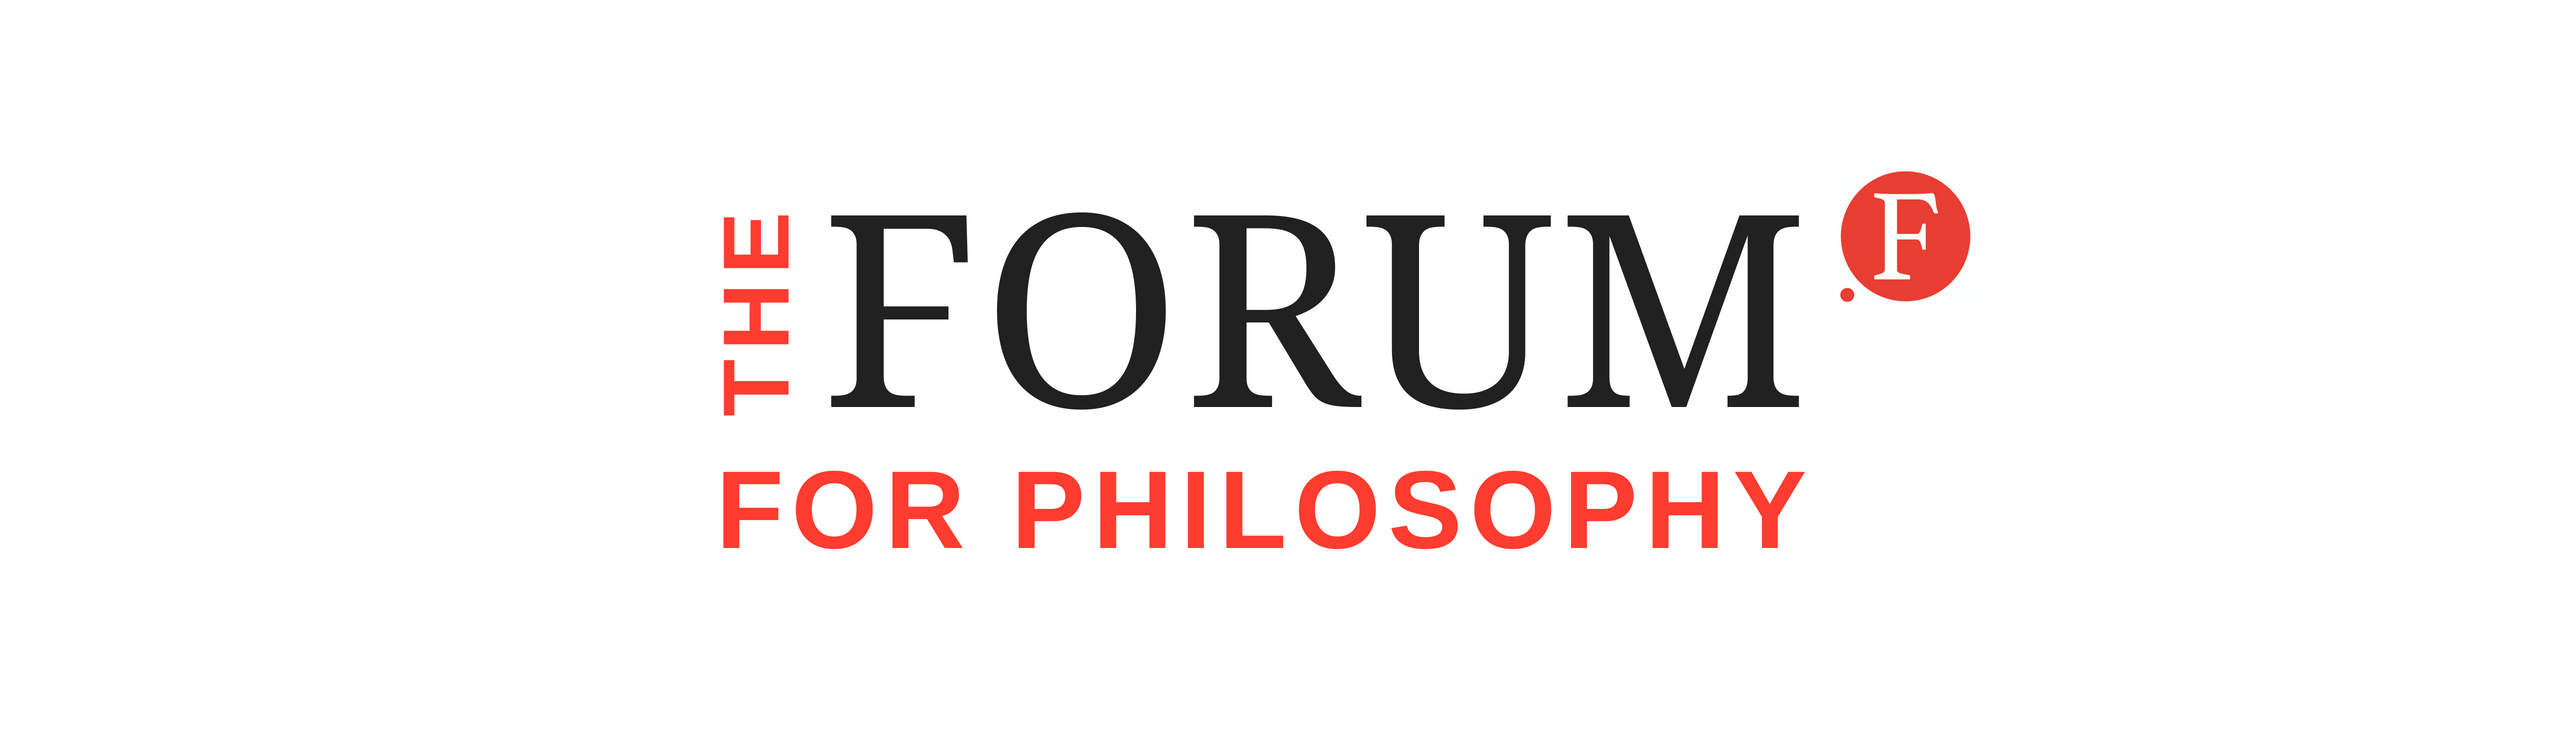 The Forum for Philosophy